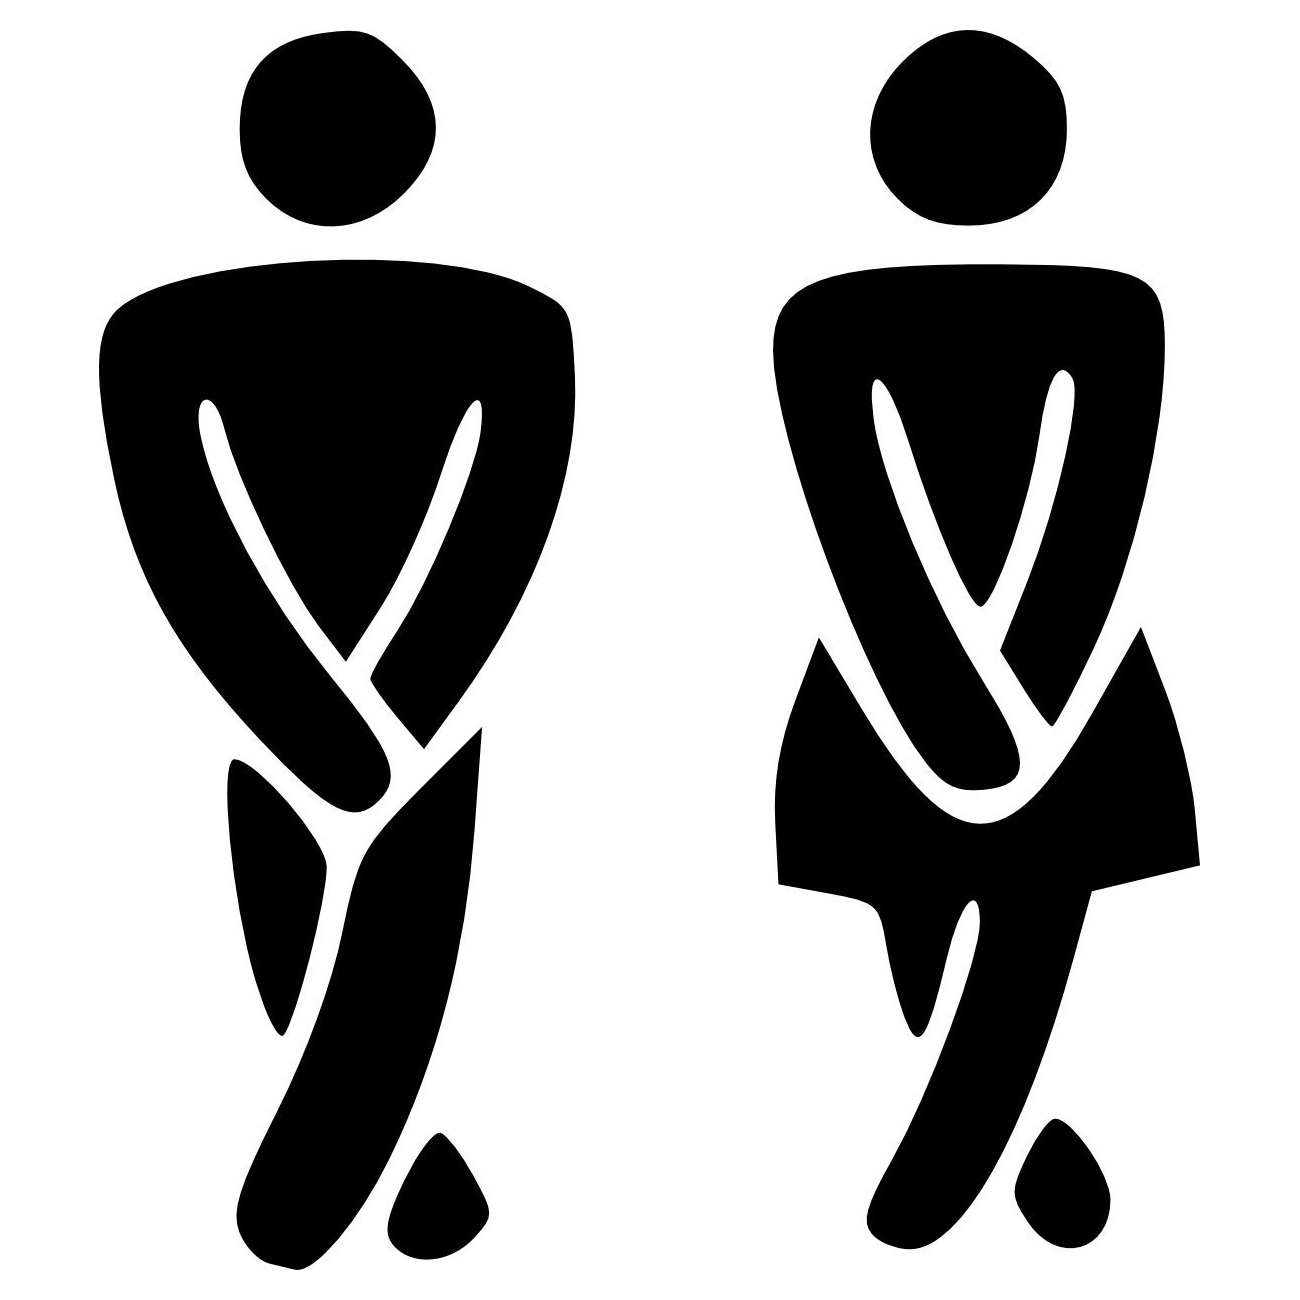 Small Restroom Restrooms Funny Toilet Entrance Decal Sticker